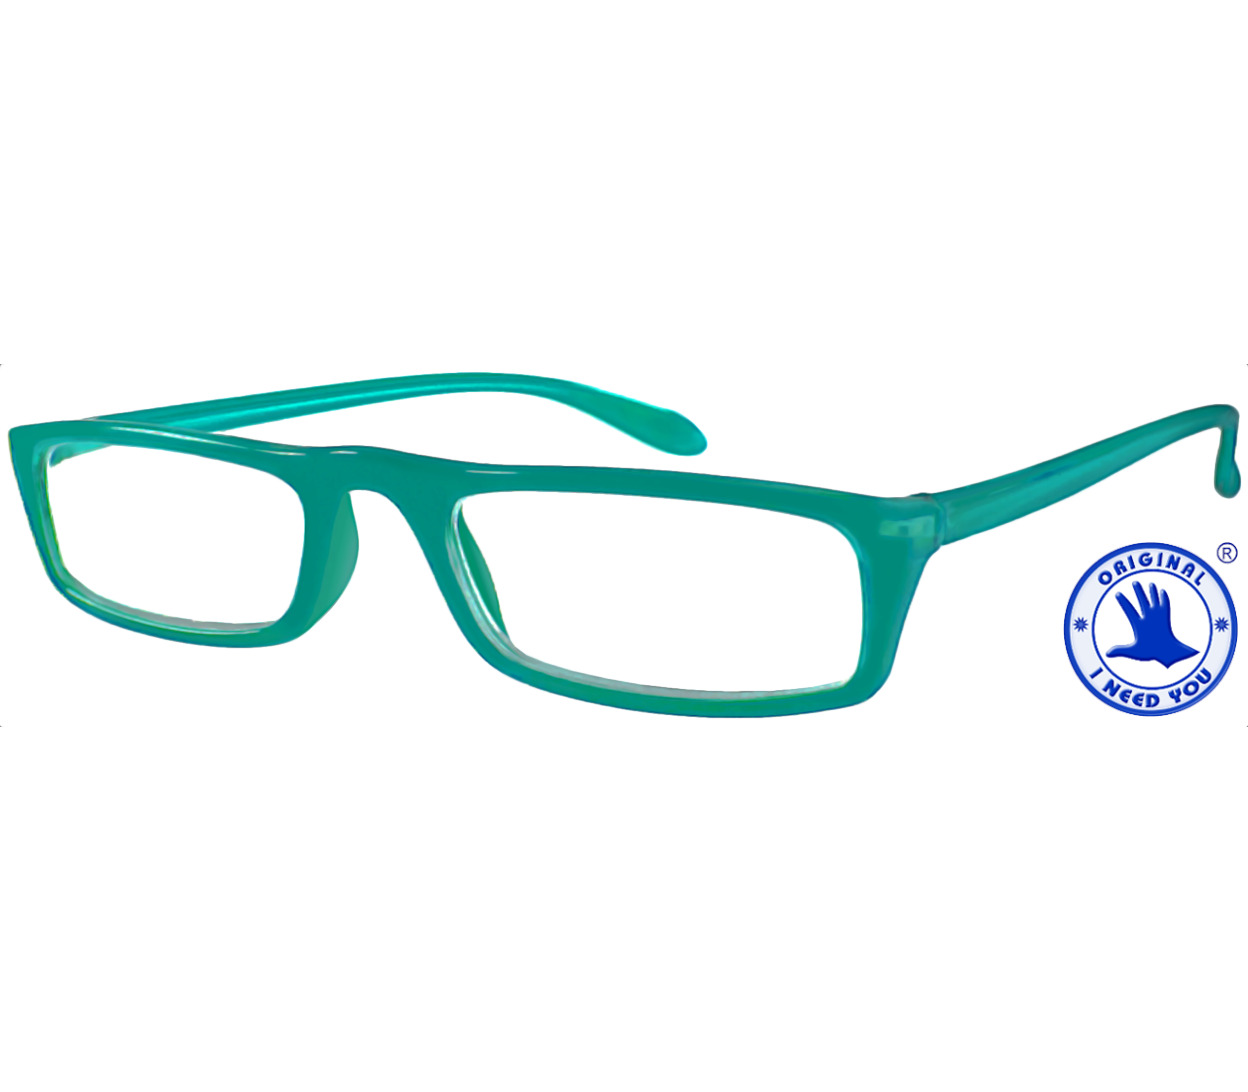 Main Image (Angle) - Florida (Turquoise) Classic Reading Glasses